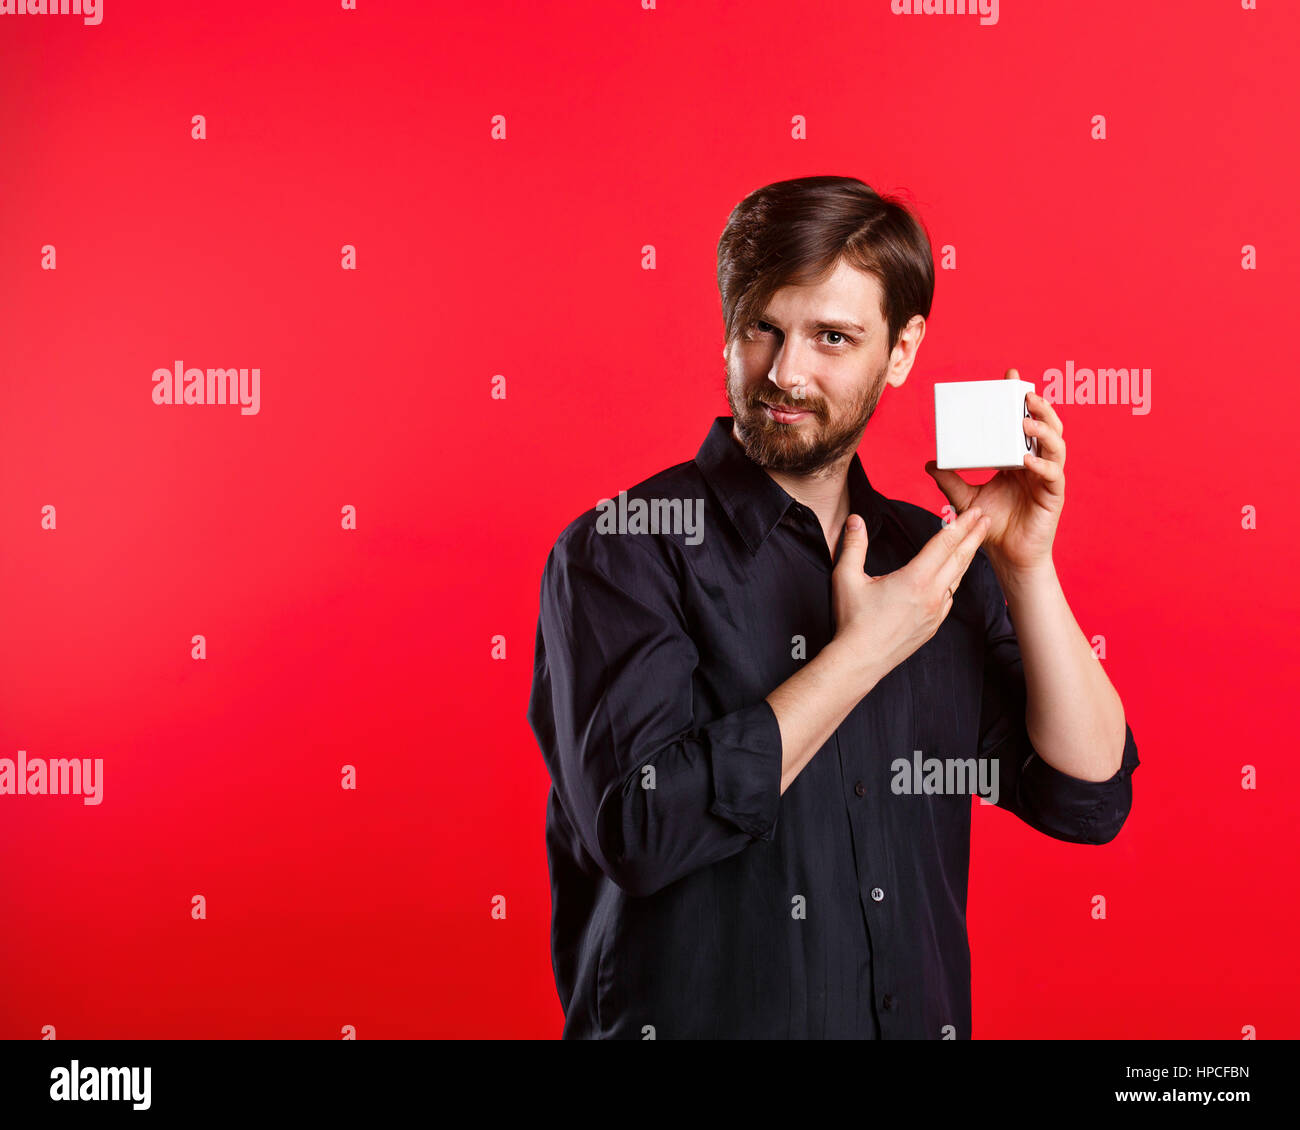 Man holding an empty cube. Advertising Space. Attractive man shows space for copy. Noteworthy. - Stock Image